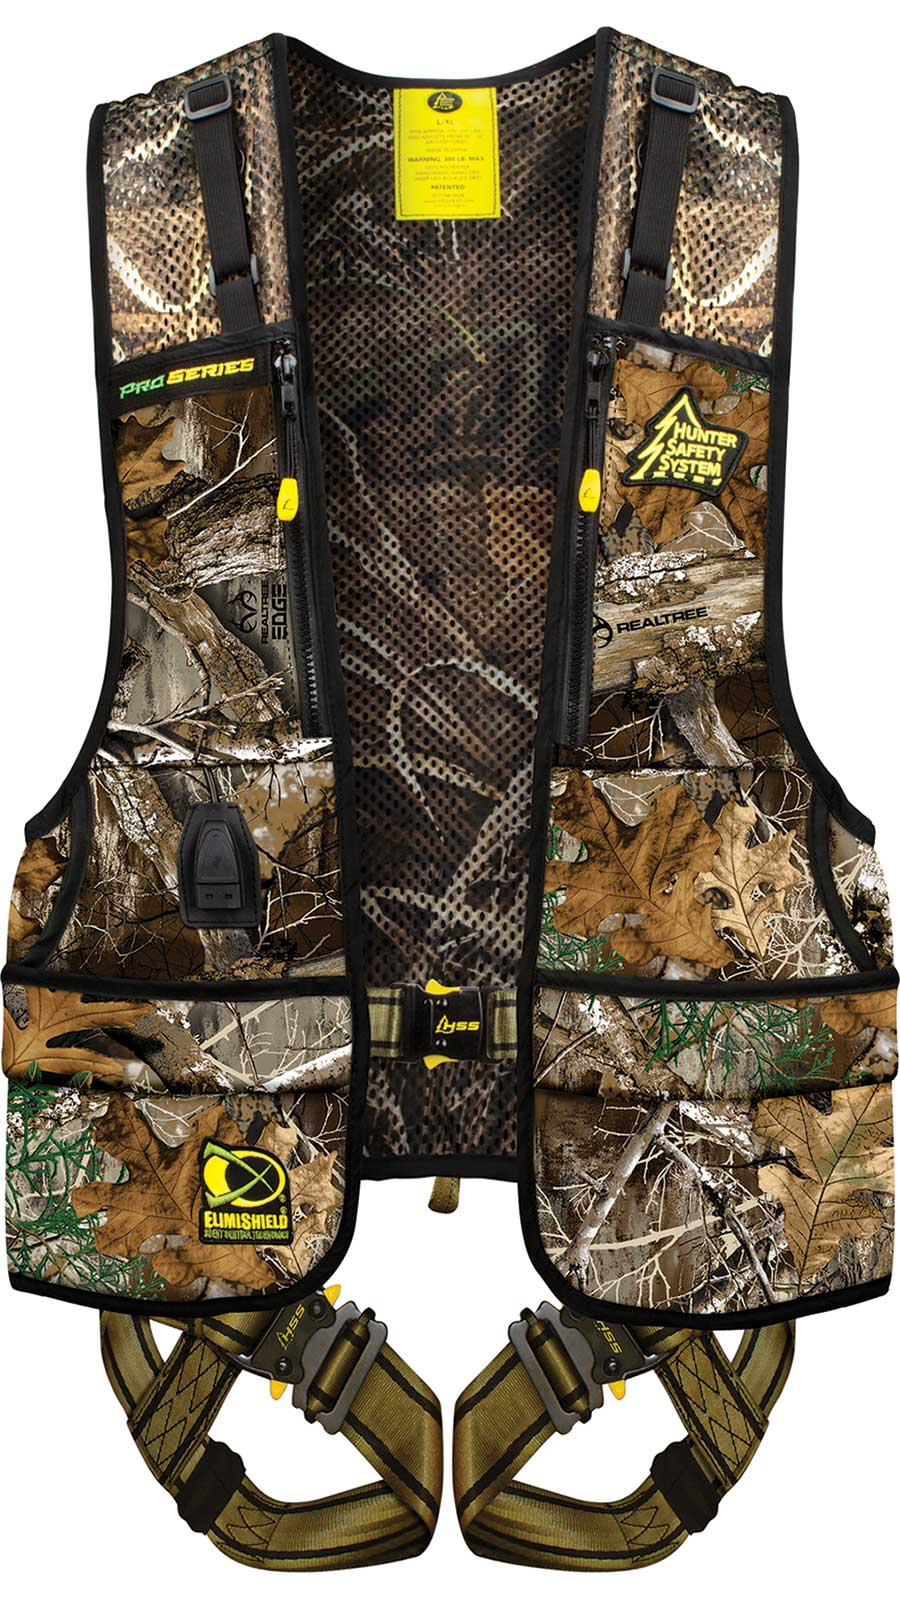 Hunter Safety System Pro Series  <br>  with Elimishield Realtree Large/X-Large